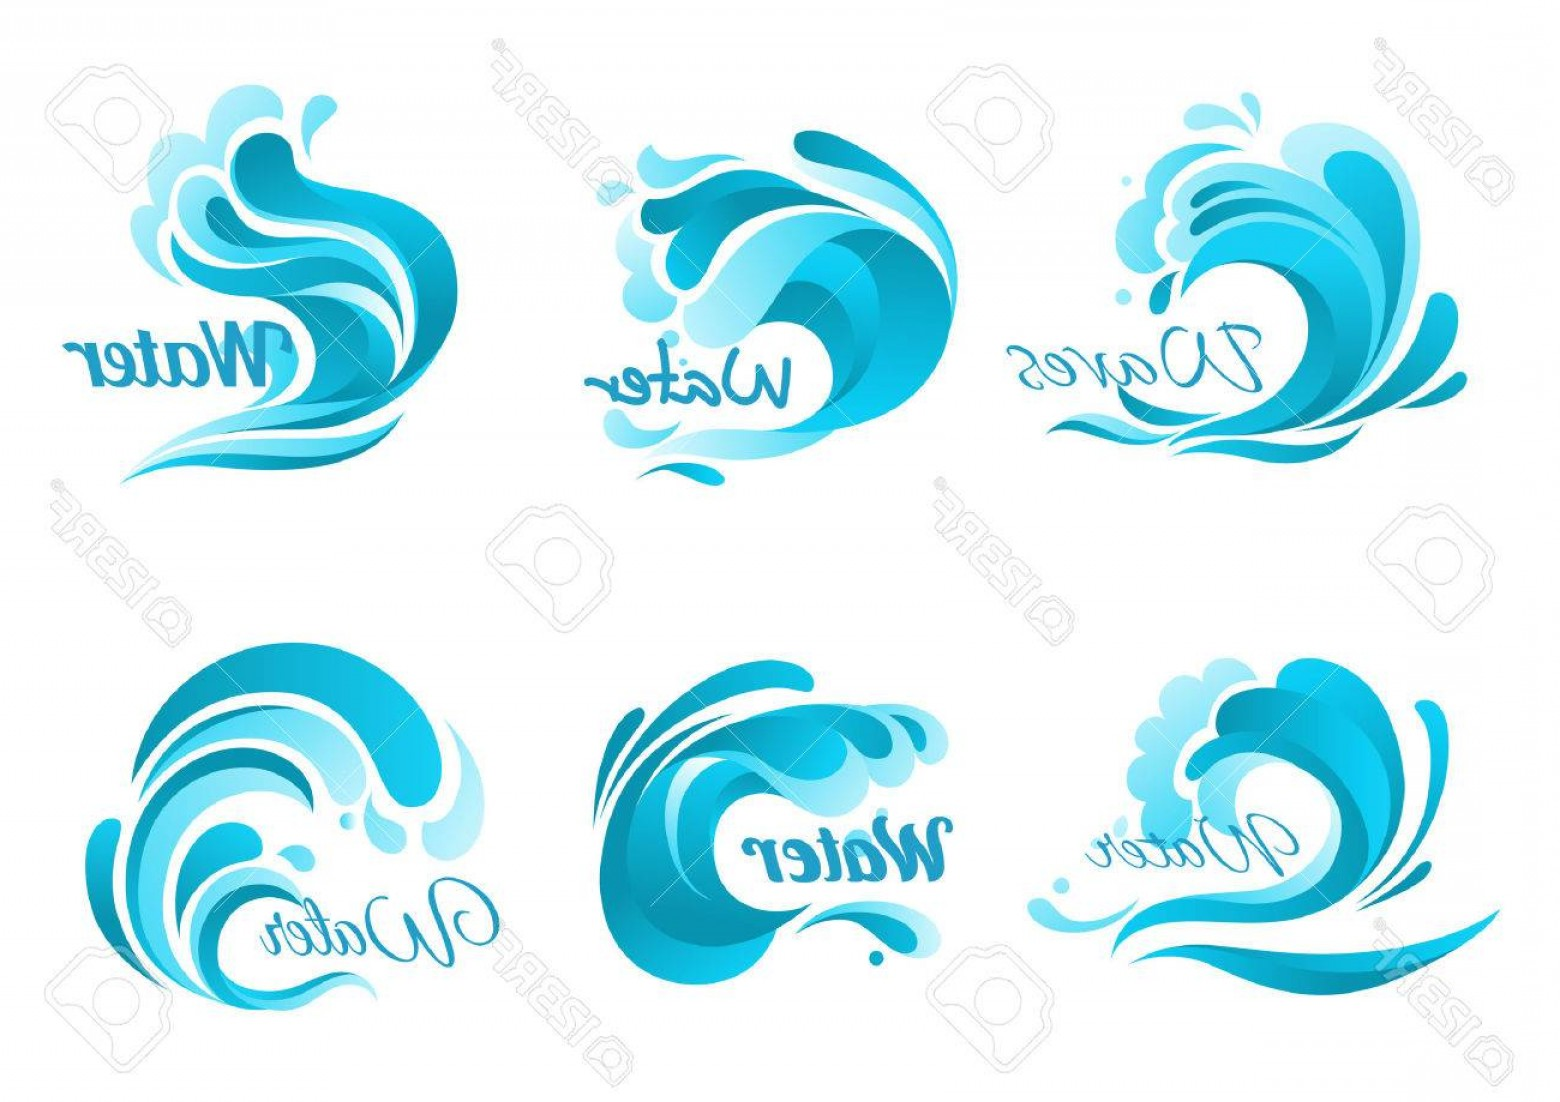 Ocean Wave Vector Illustration: Photostock Vector Waves Vector Isolated Icons Ocean Water Wave Blue Symbols In Form Of Splashes Tide Water Rollers Sto